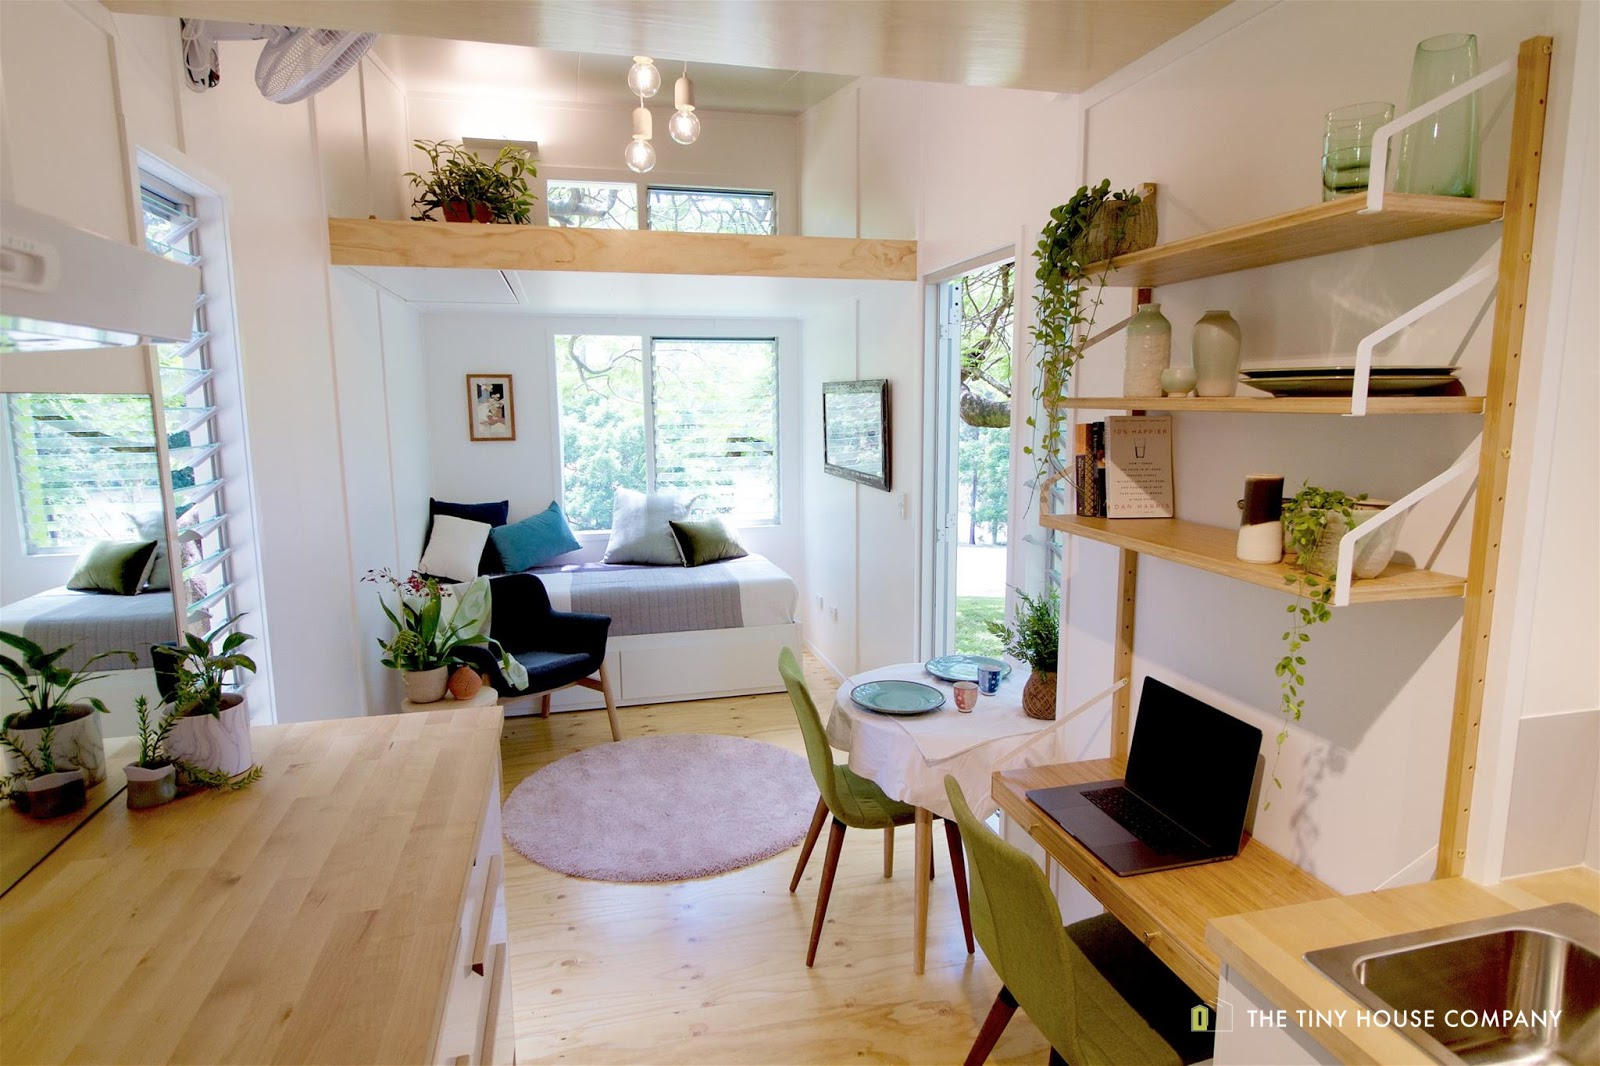 TINY HOUSE TOWN The Pod C From The Tiny House Company